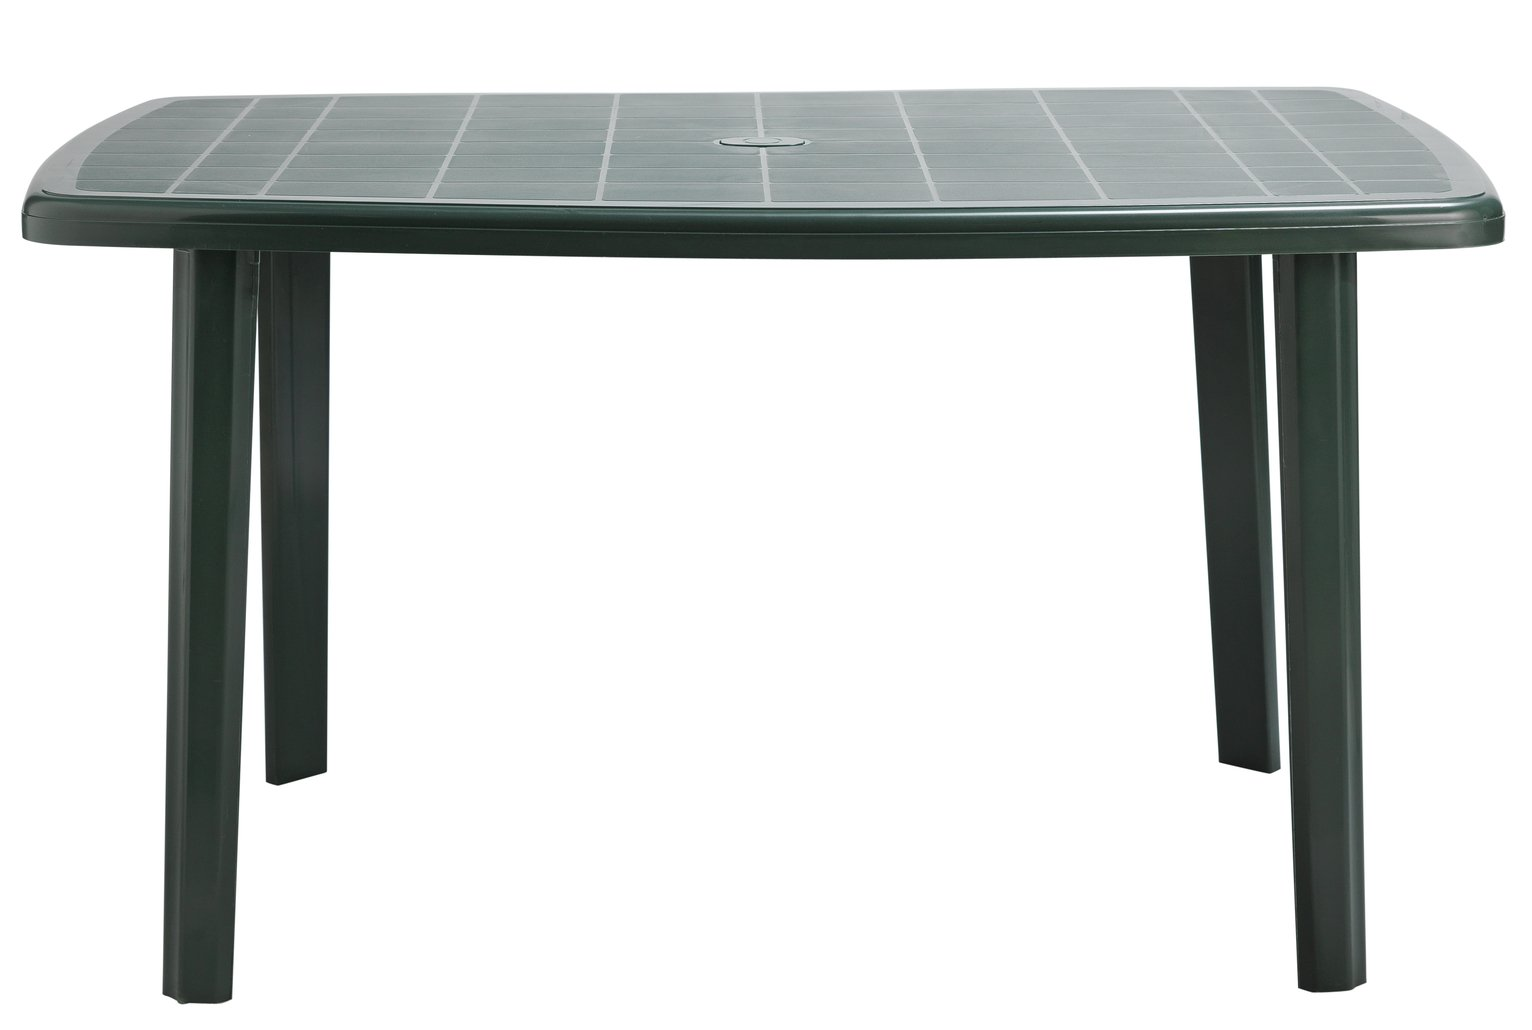 Argos Home - Large Oblong Table - Cayman Green from Argos Home